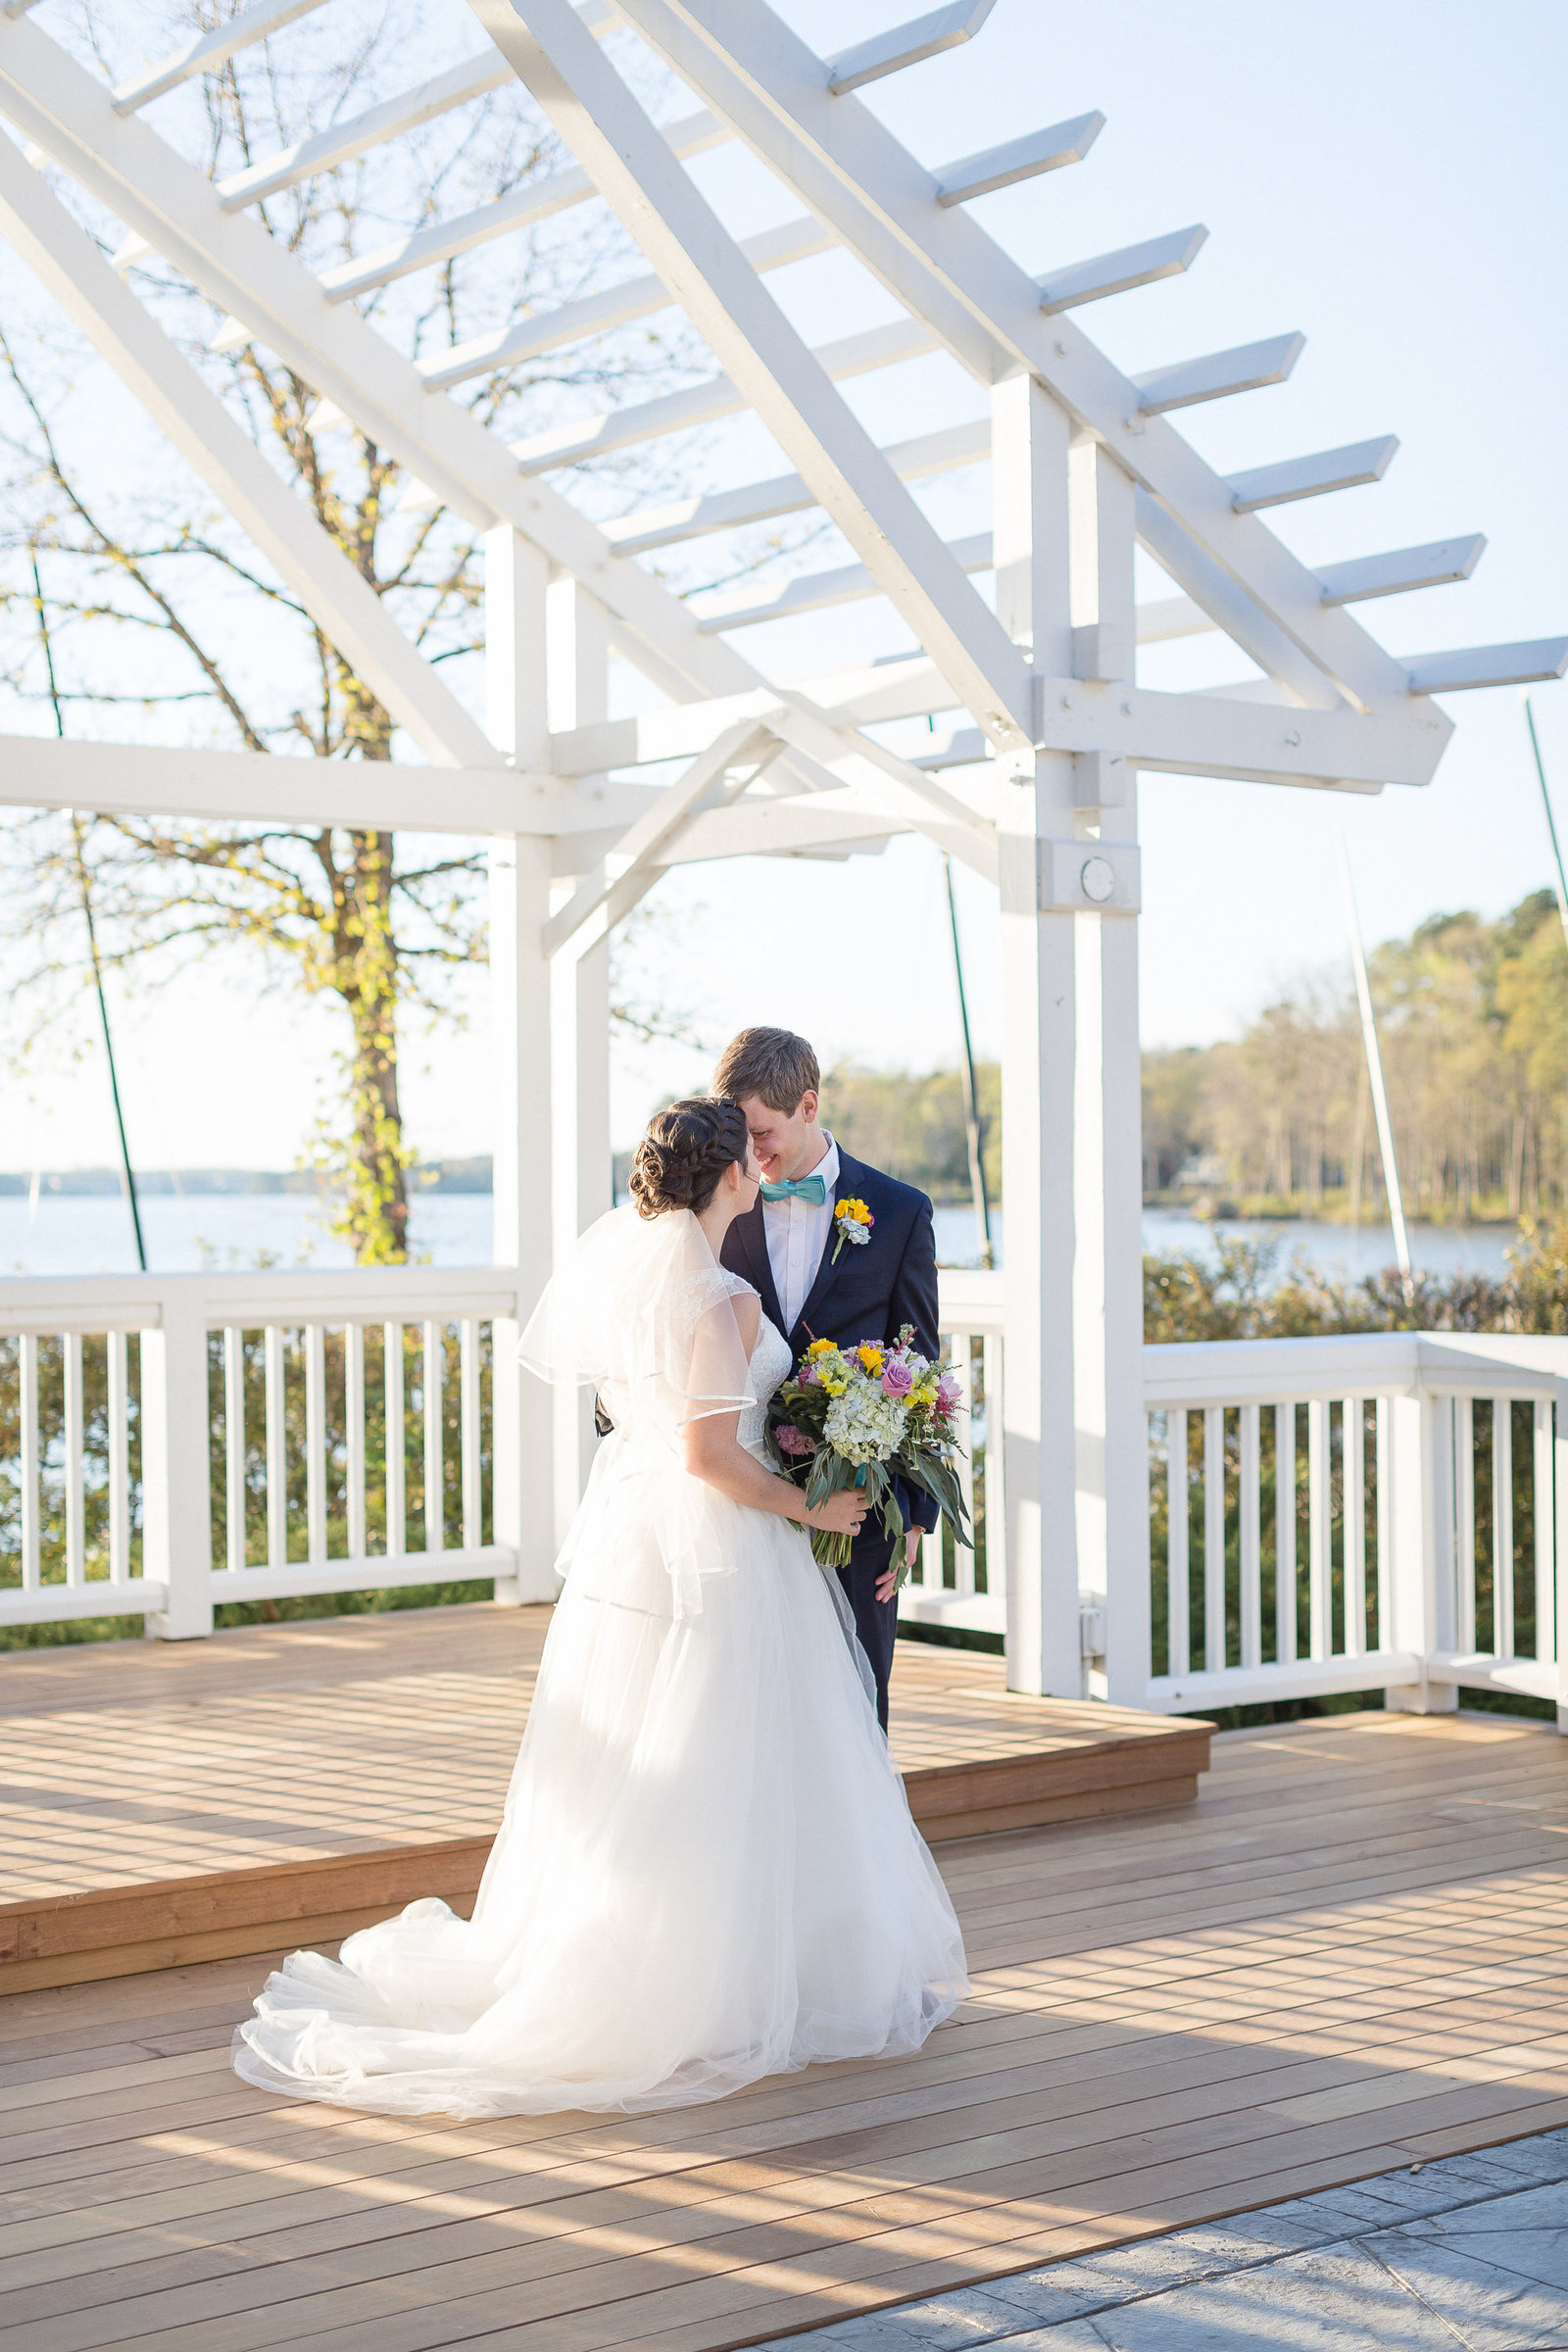 Sarah-and-Andrew-Boathouse-at-Sunday-Park-Wedding-Melissa-Desjardins-Photography-4